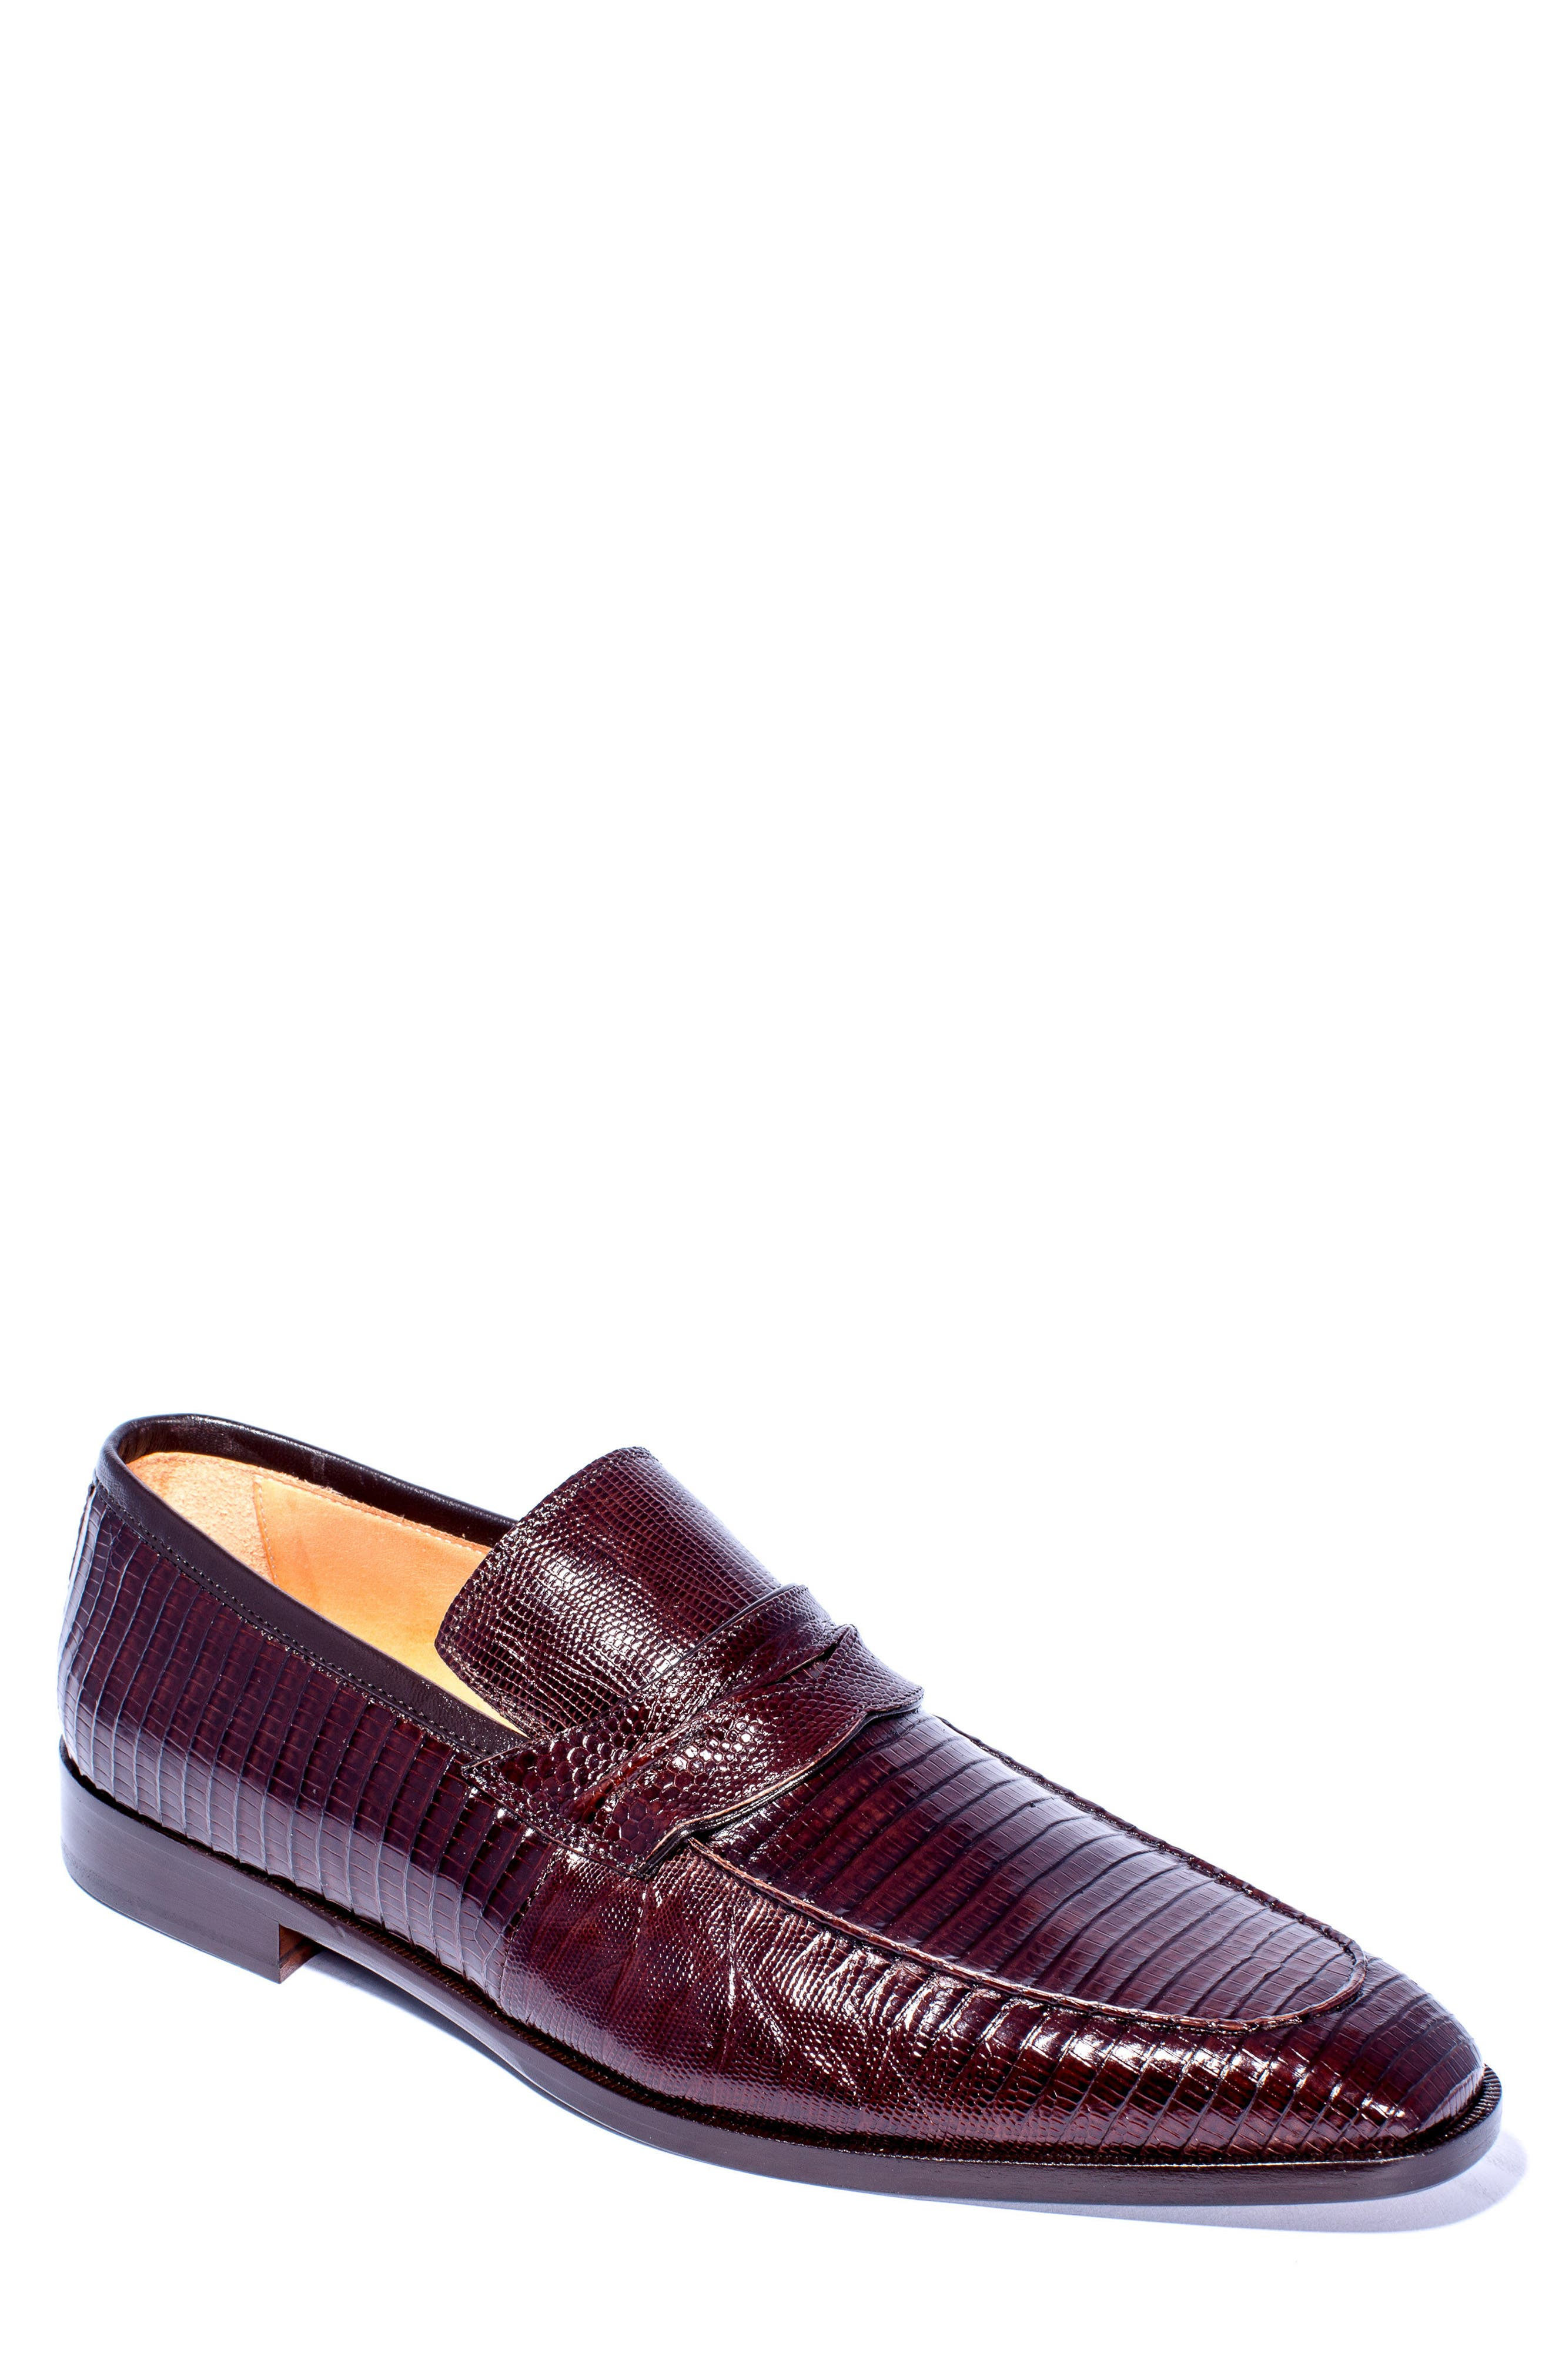 Meo Penny Loafer,                             Main thumbnail 1, color,                             Brown